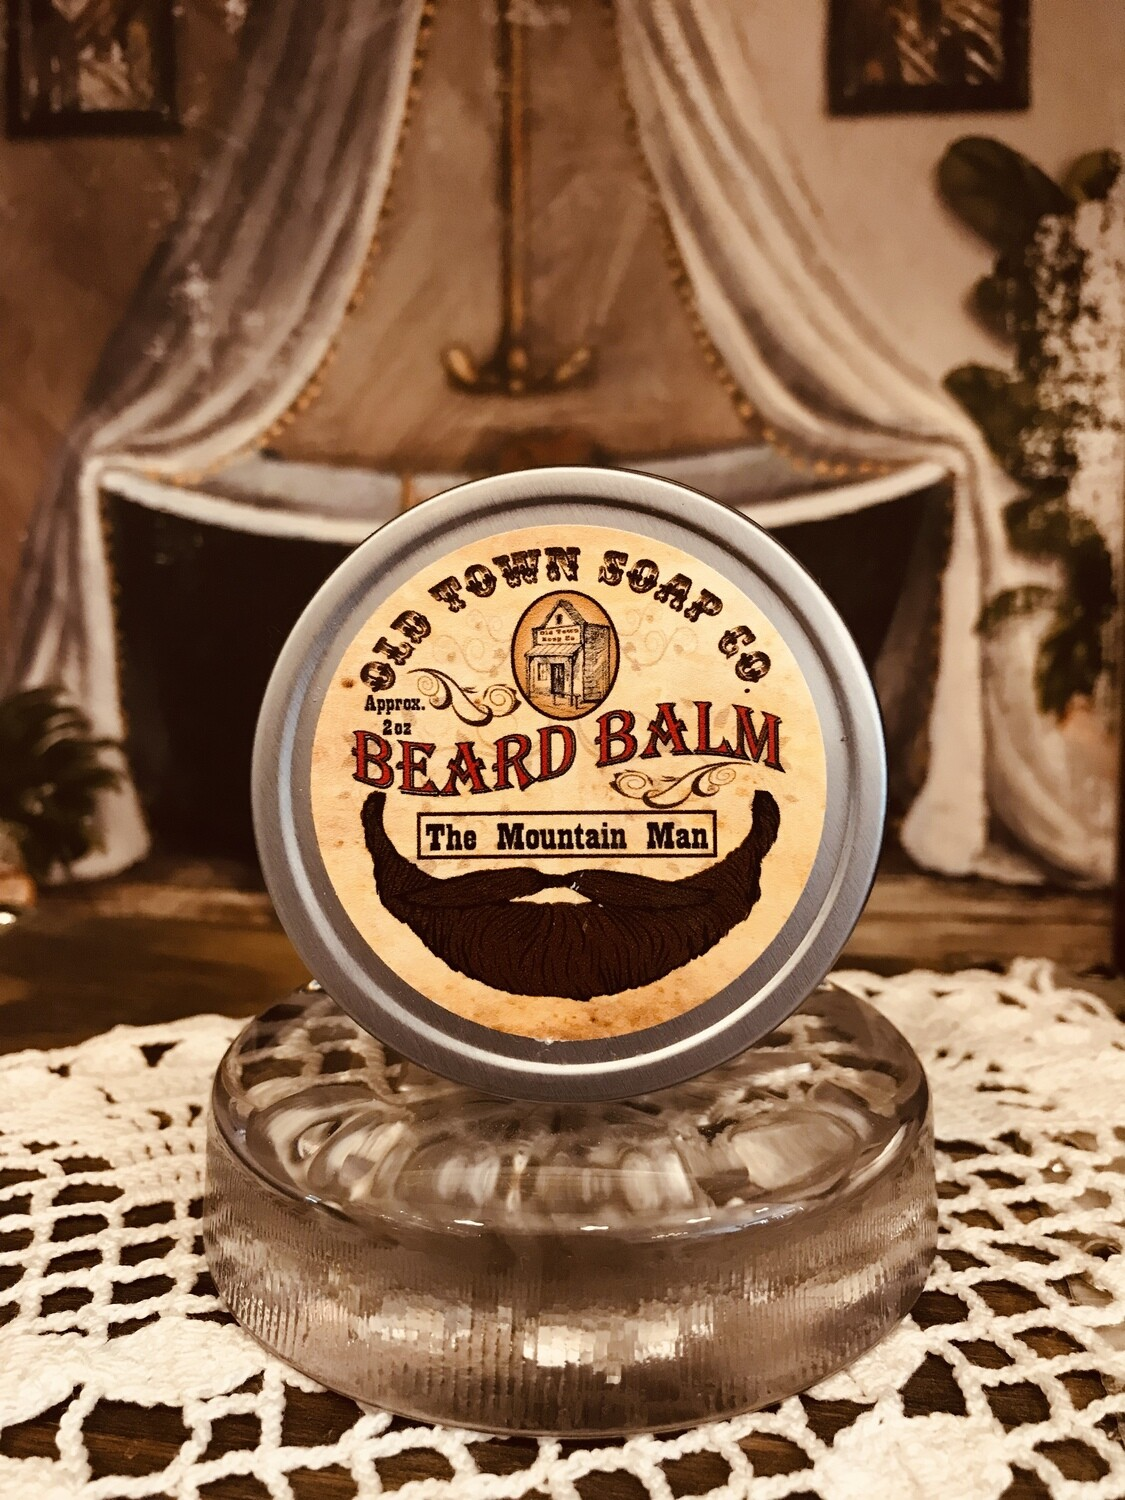 The Mountain Man -Beard Balm